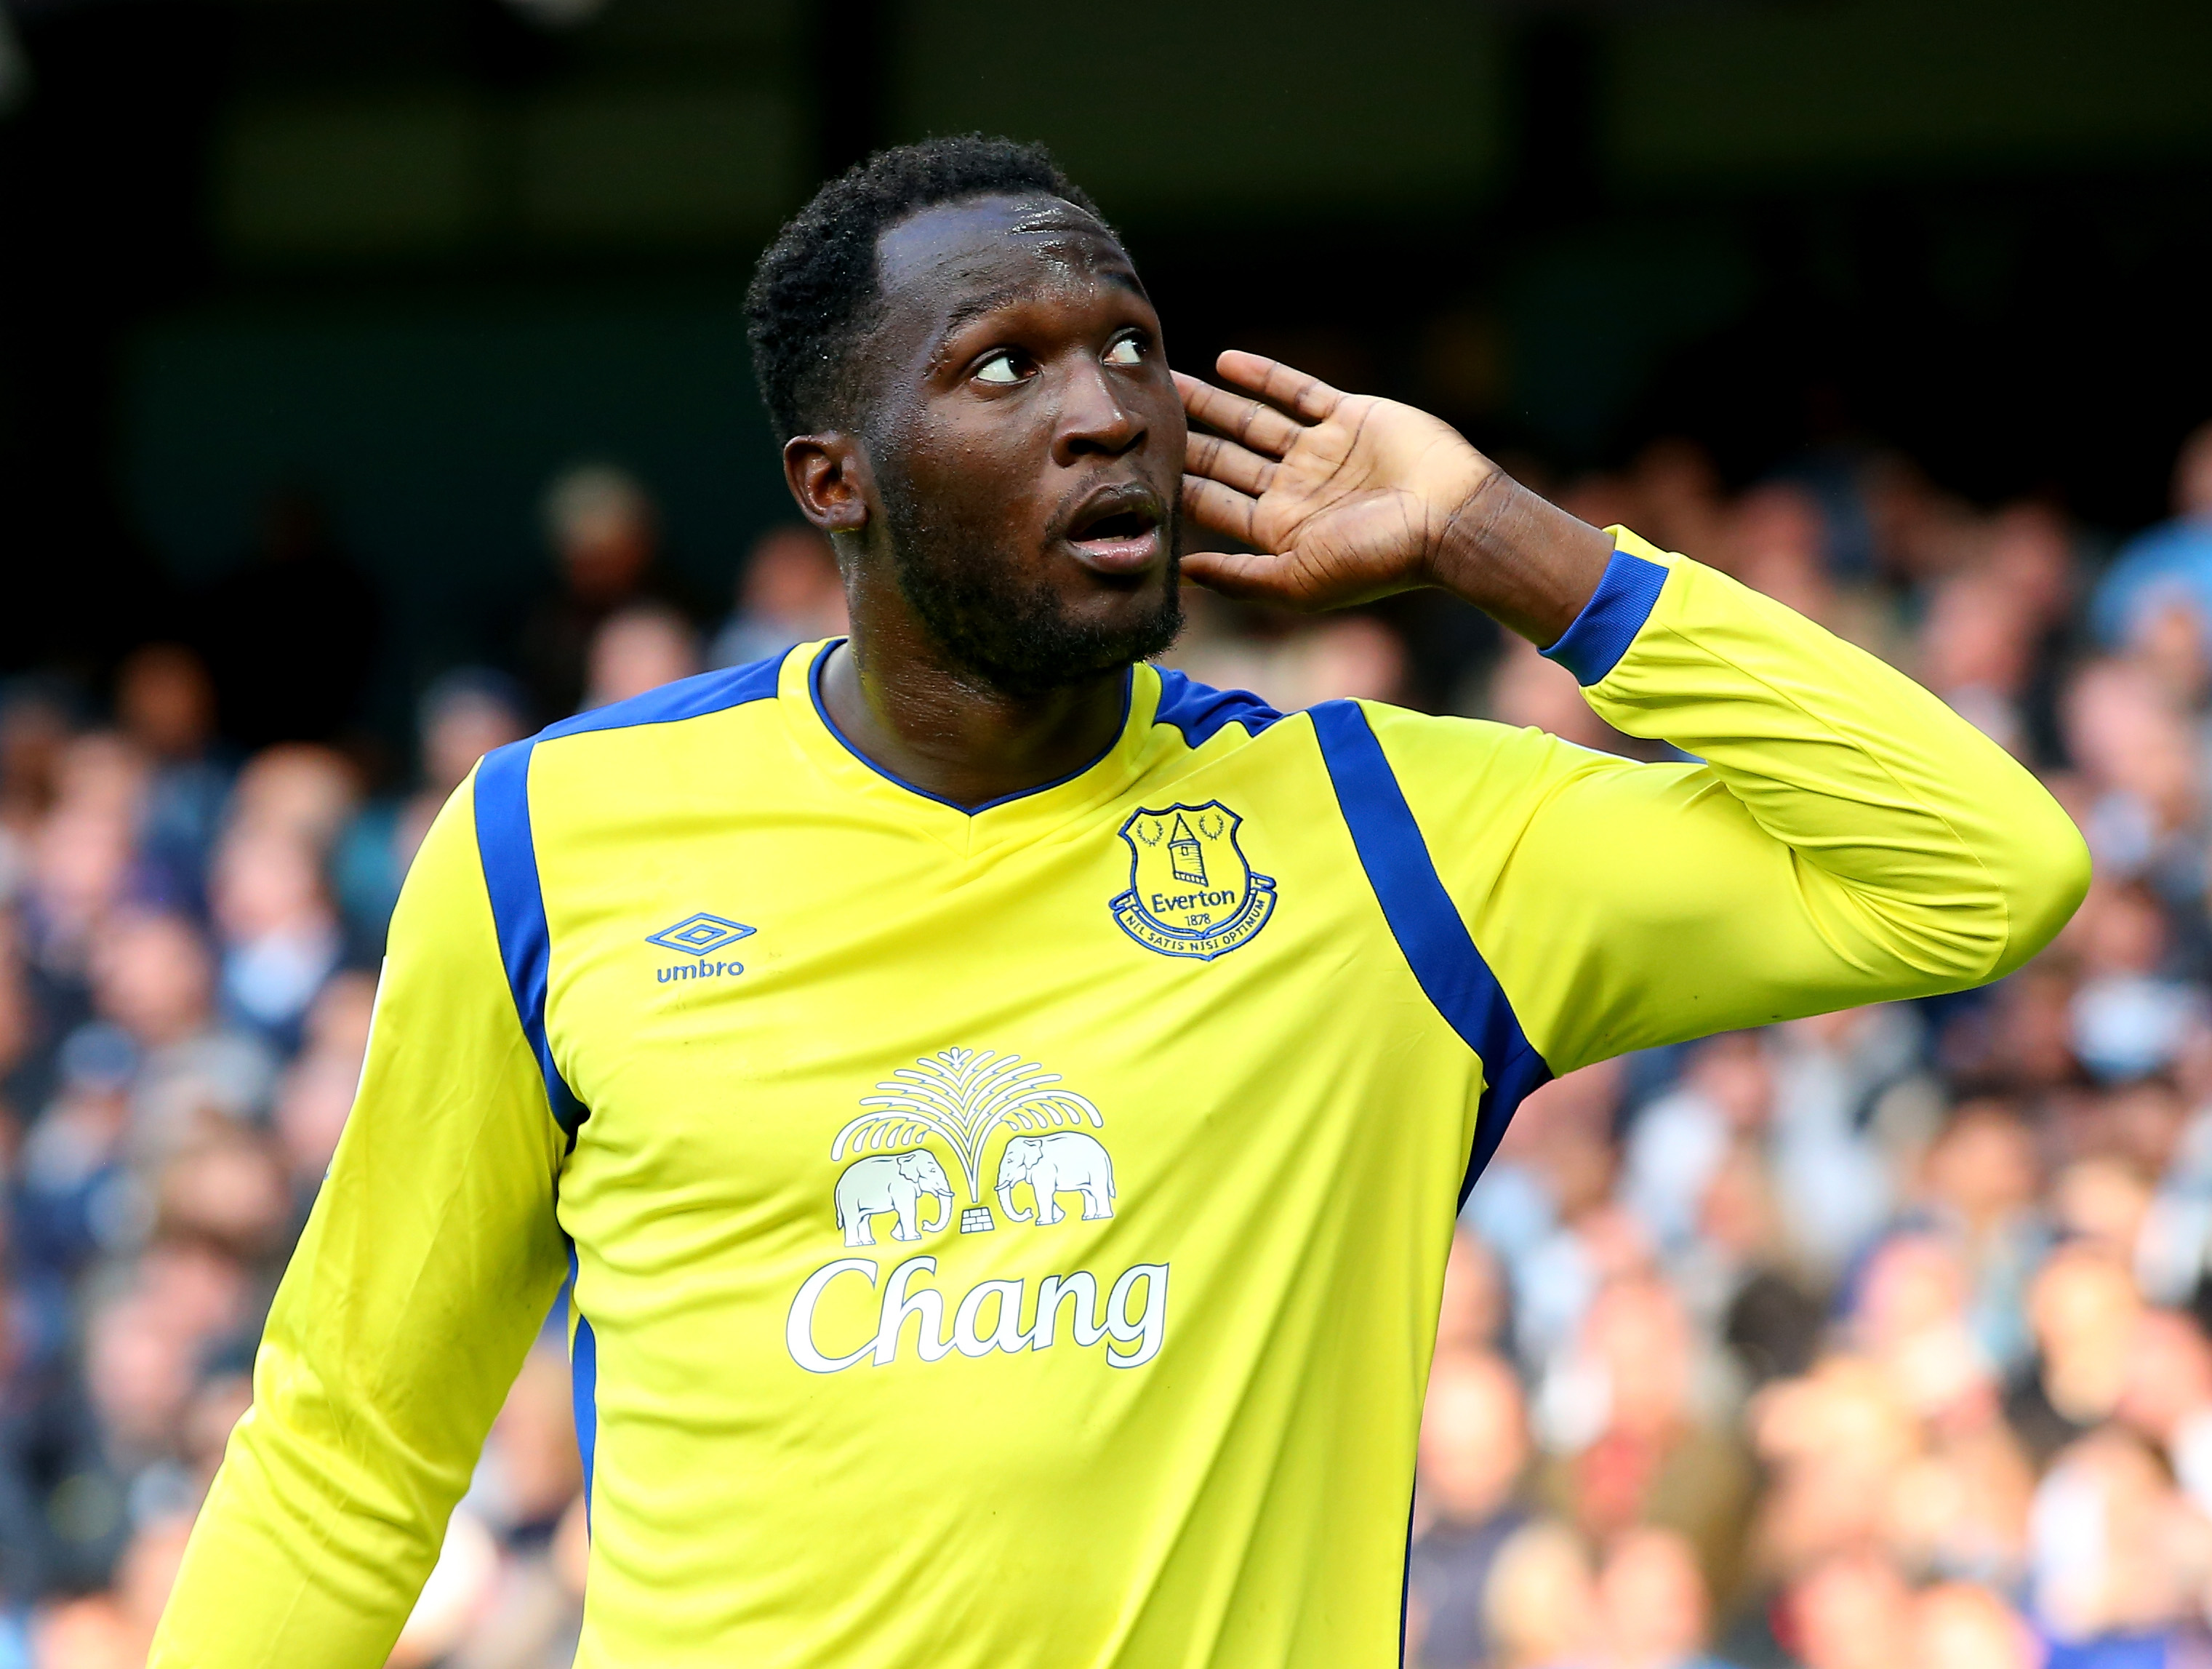 Manchester United and Chelsea on red alert as Ronald Koeman tells Romelu Lukaku he should play for a bigger club than Everton